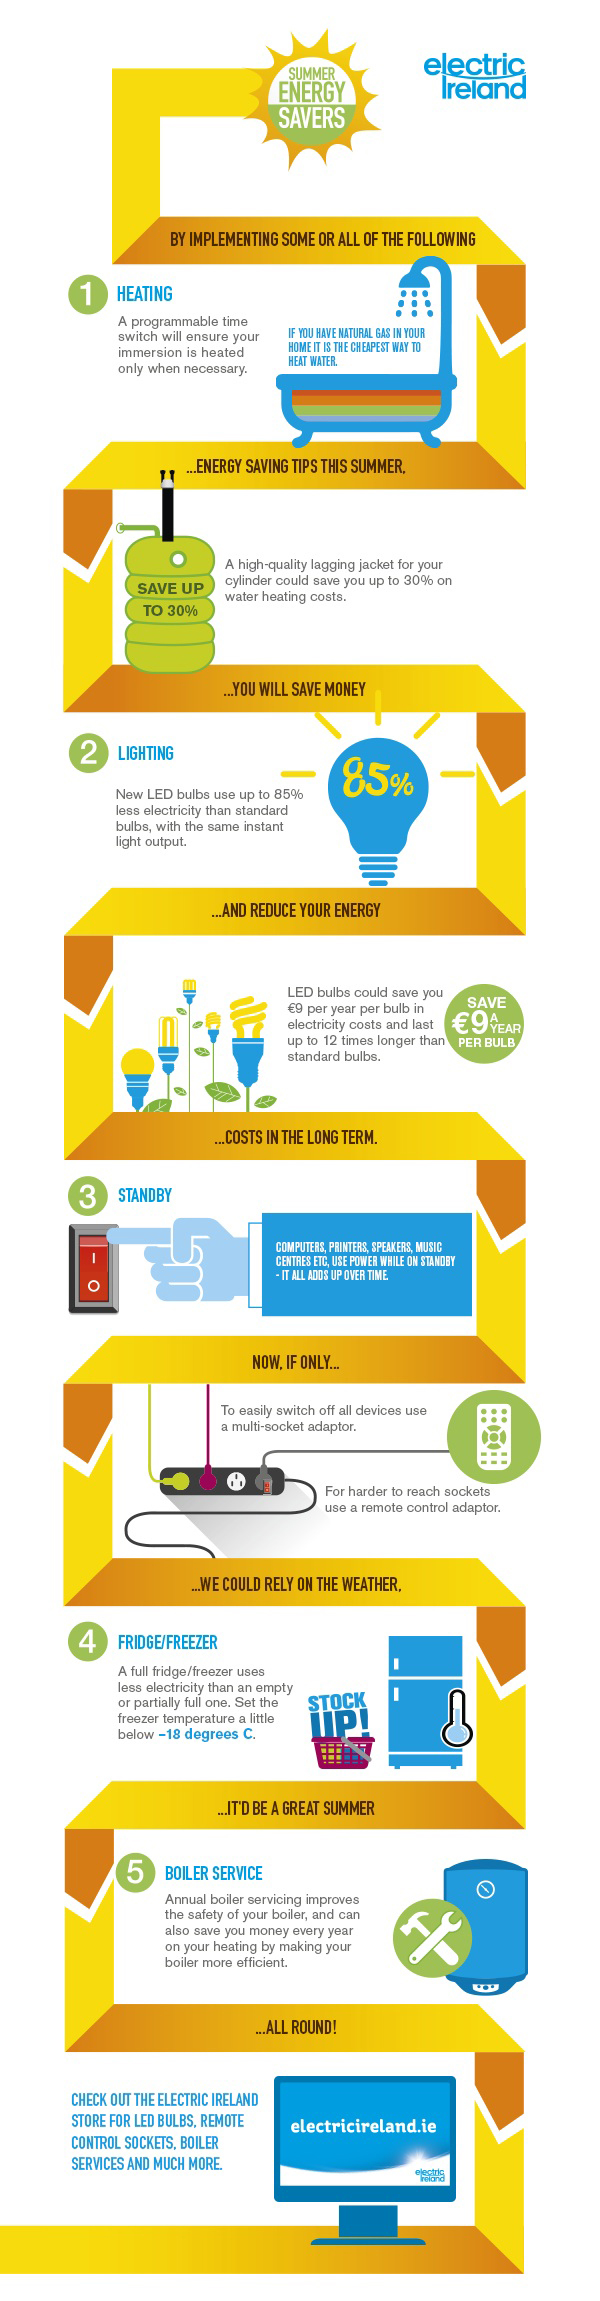 Energy Saving Tips For Summer summer energy saving tips infographic | electric ireland